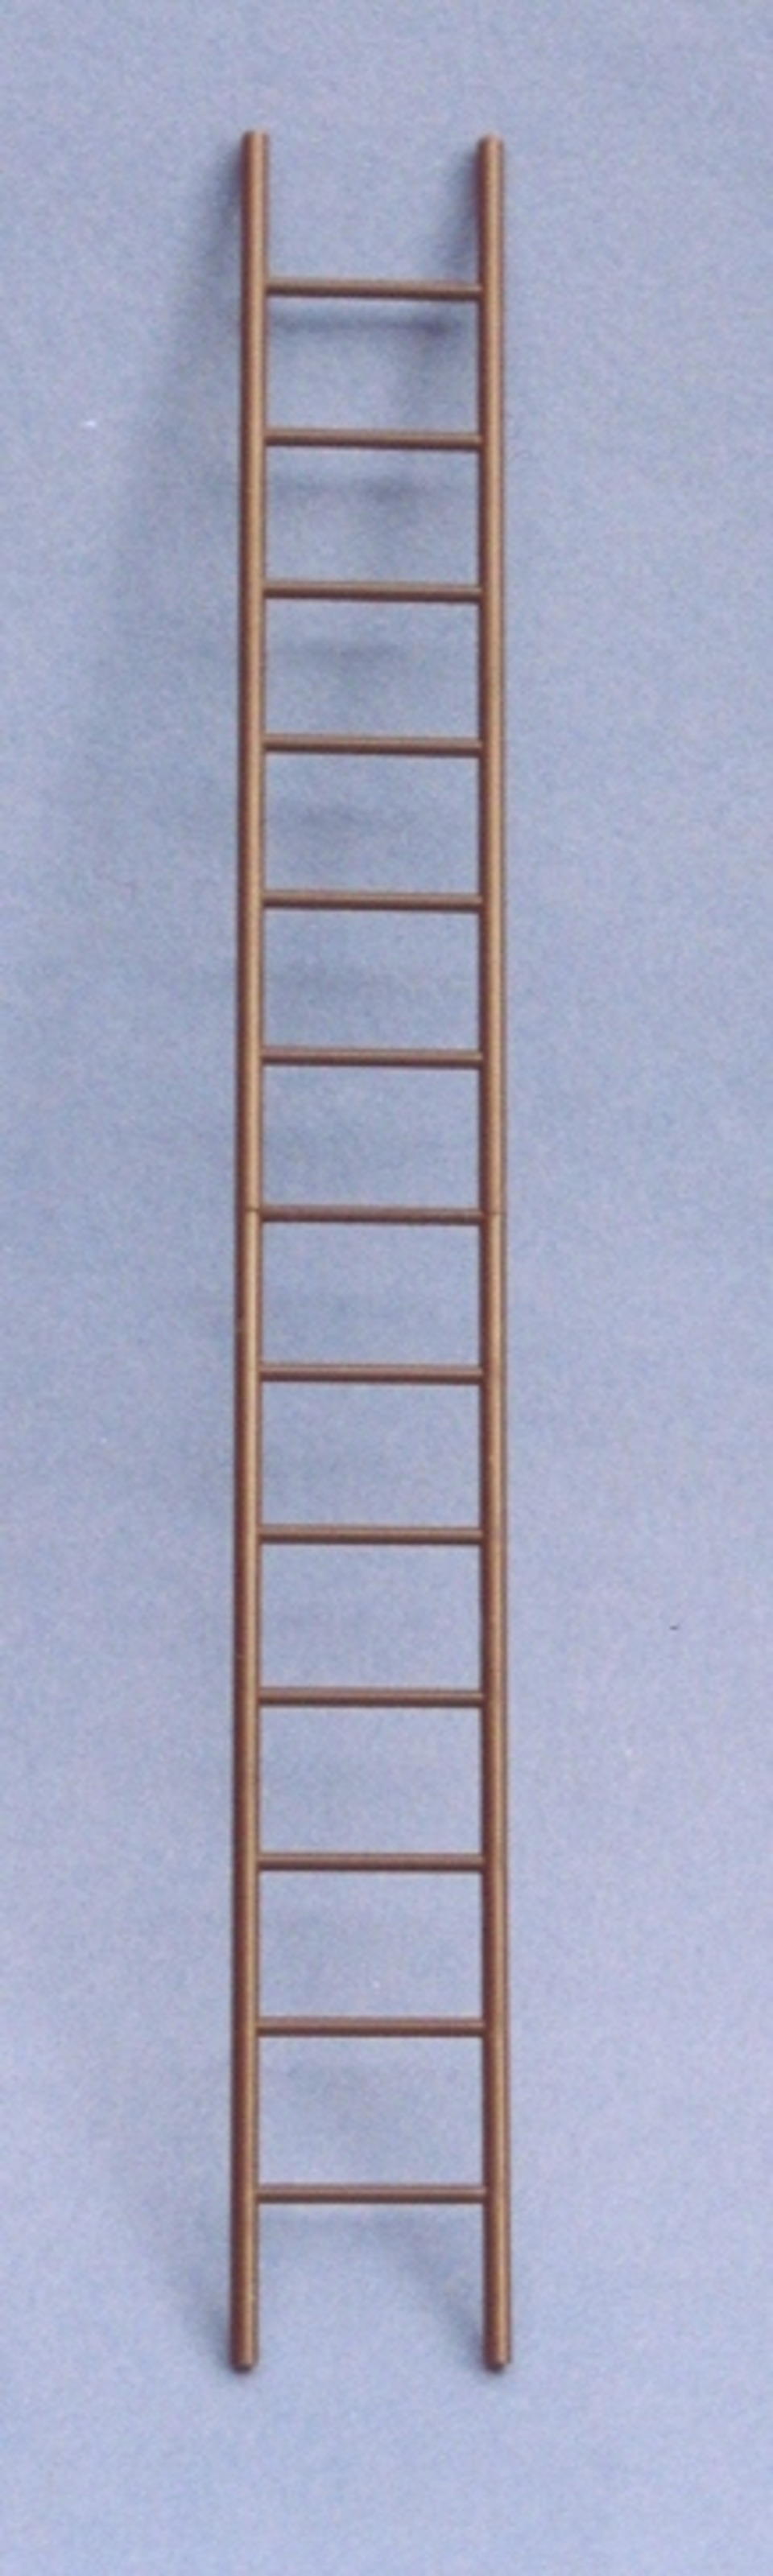 Ladder - Part #606